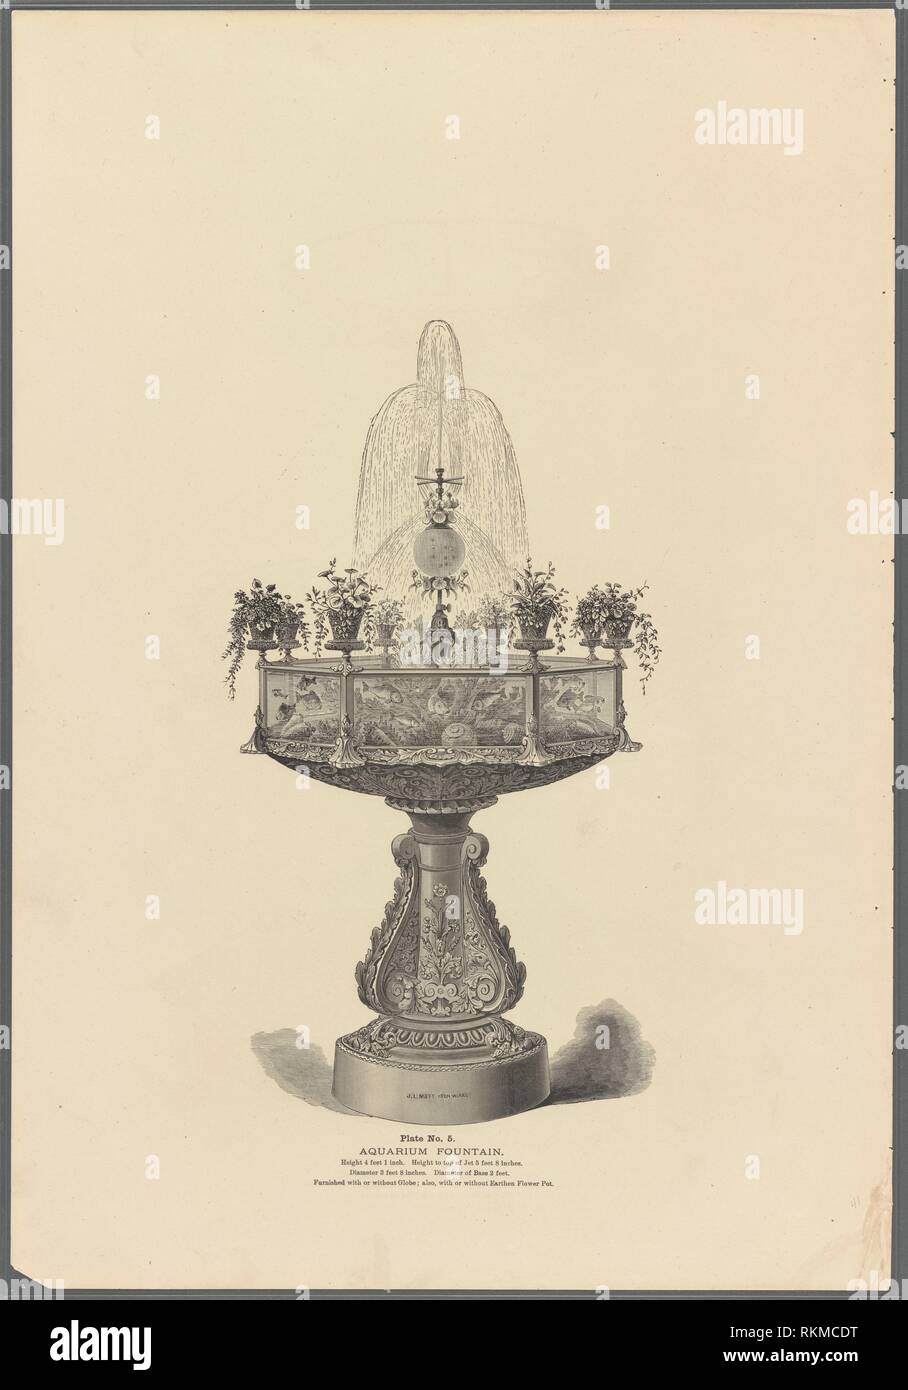 Aquarium fountain, No. 5 [section no. 1, p. 41]. J.L. Mott Iron Works (Manufacturer). Illustrated catalogue of statuary, fountains, vases, settees, - Stock Image